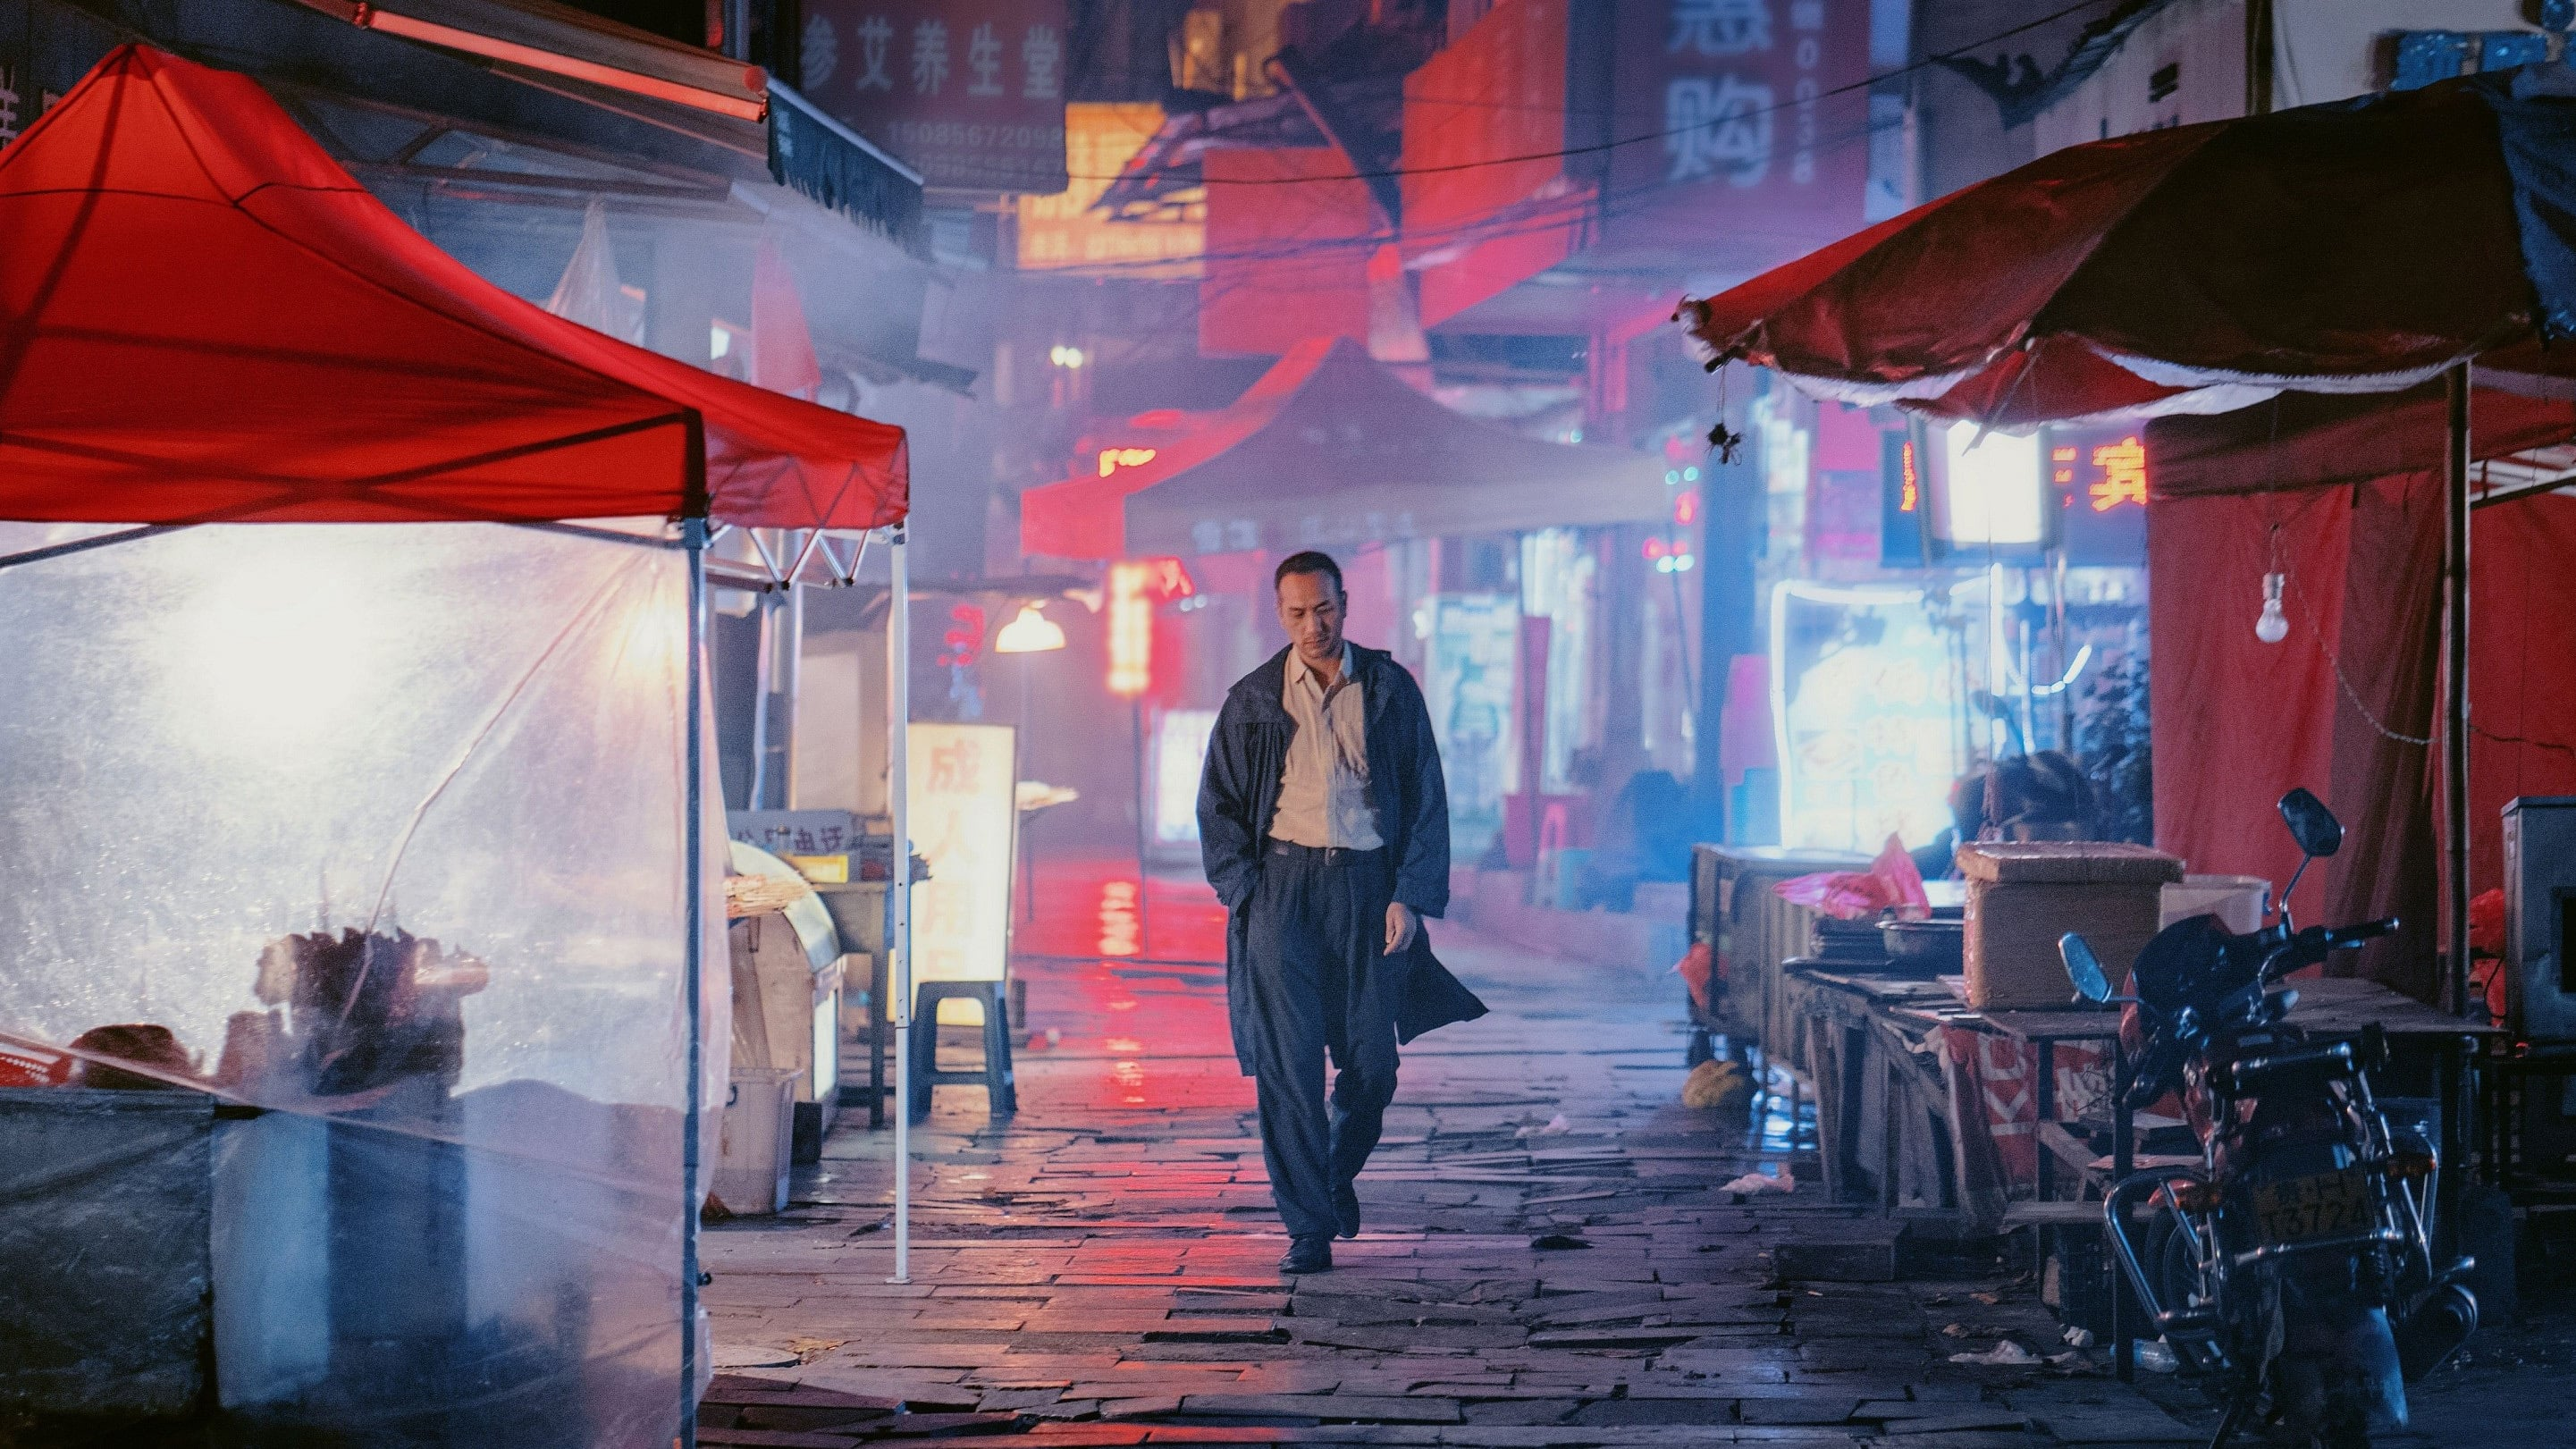 Long Day's Journey Into Night Full Movie Streaming Online in HD-720p Video Quality